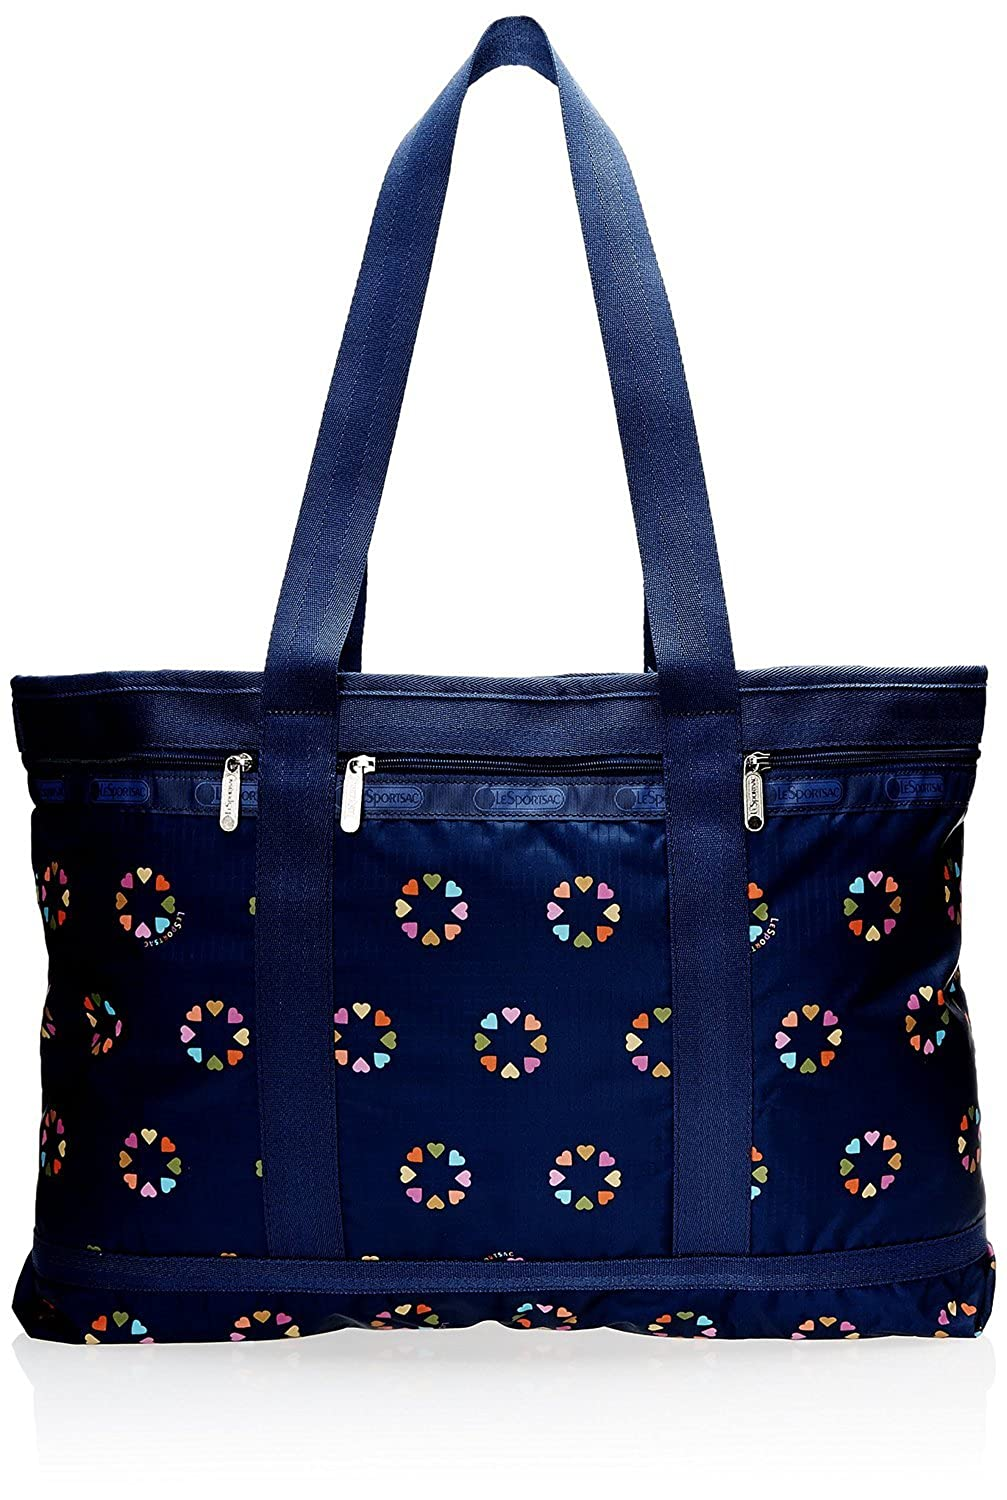 LeSportsac Travel Tote Handbag, Happy Hearts